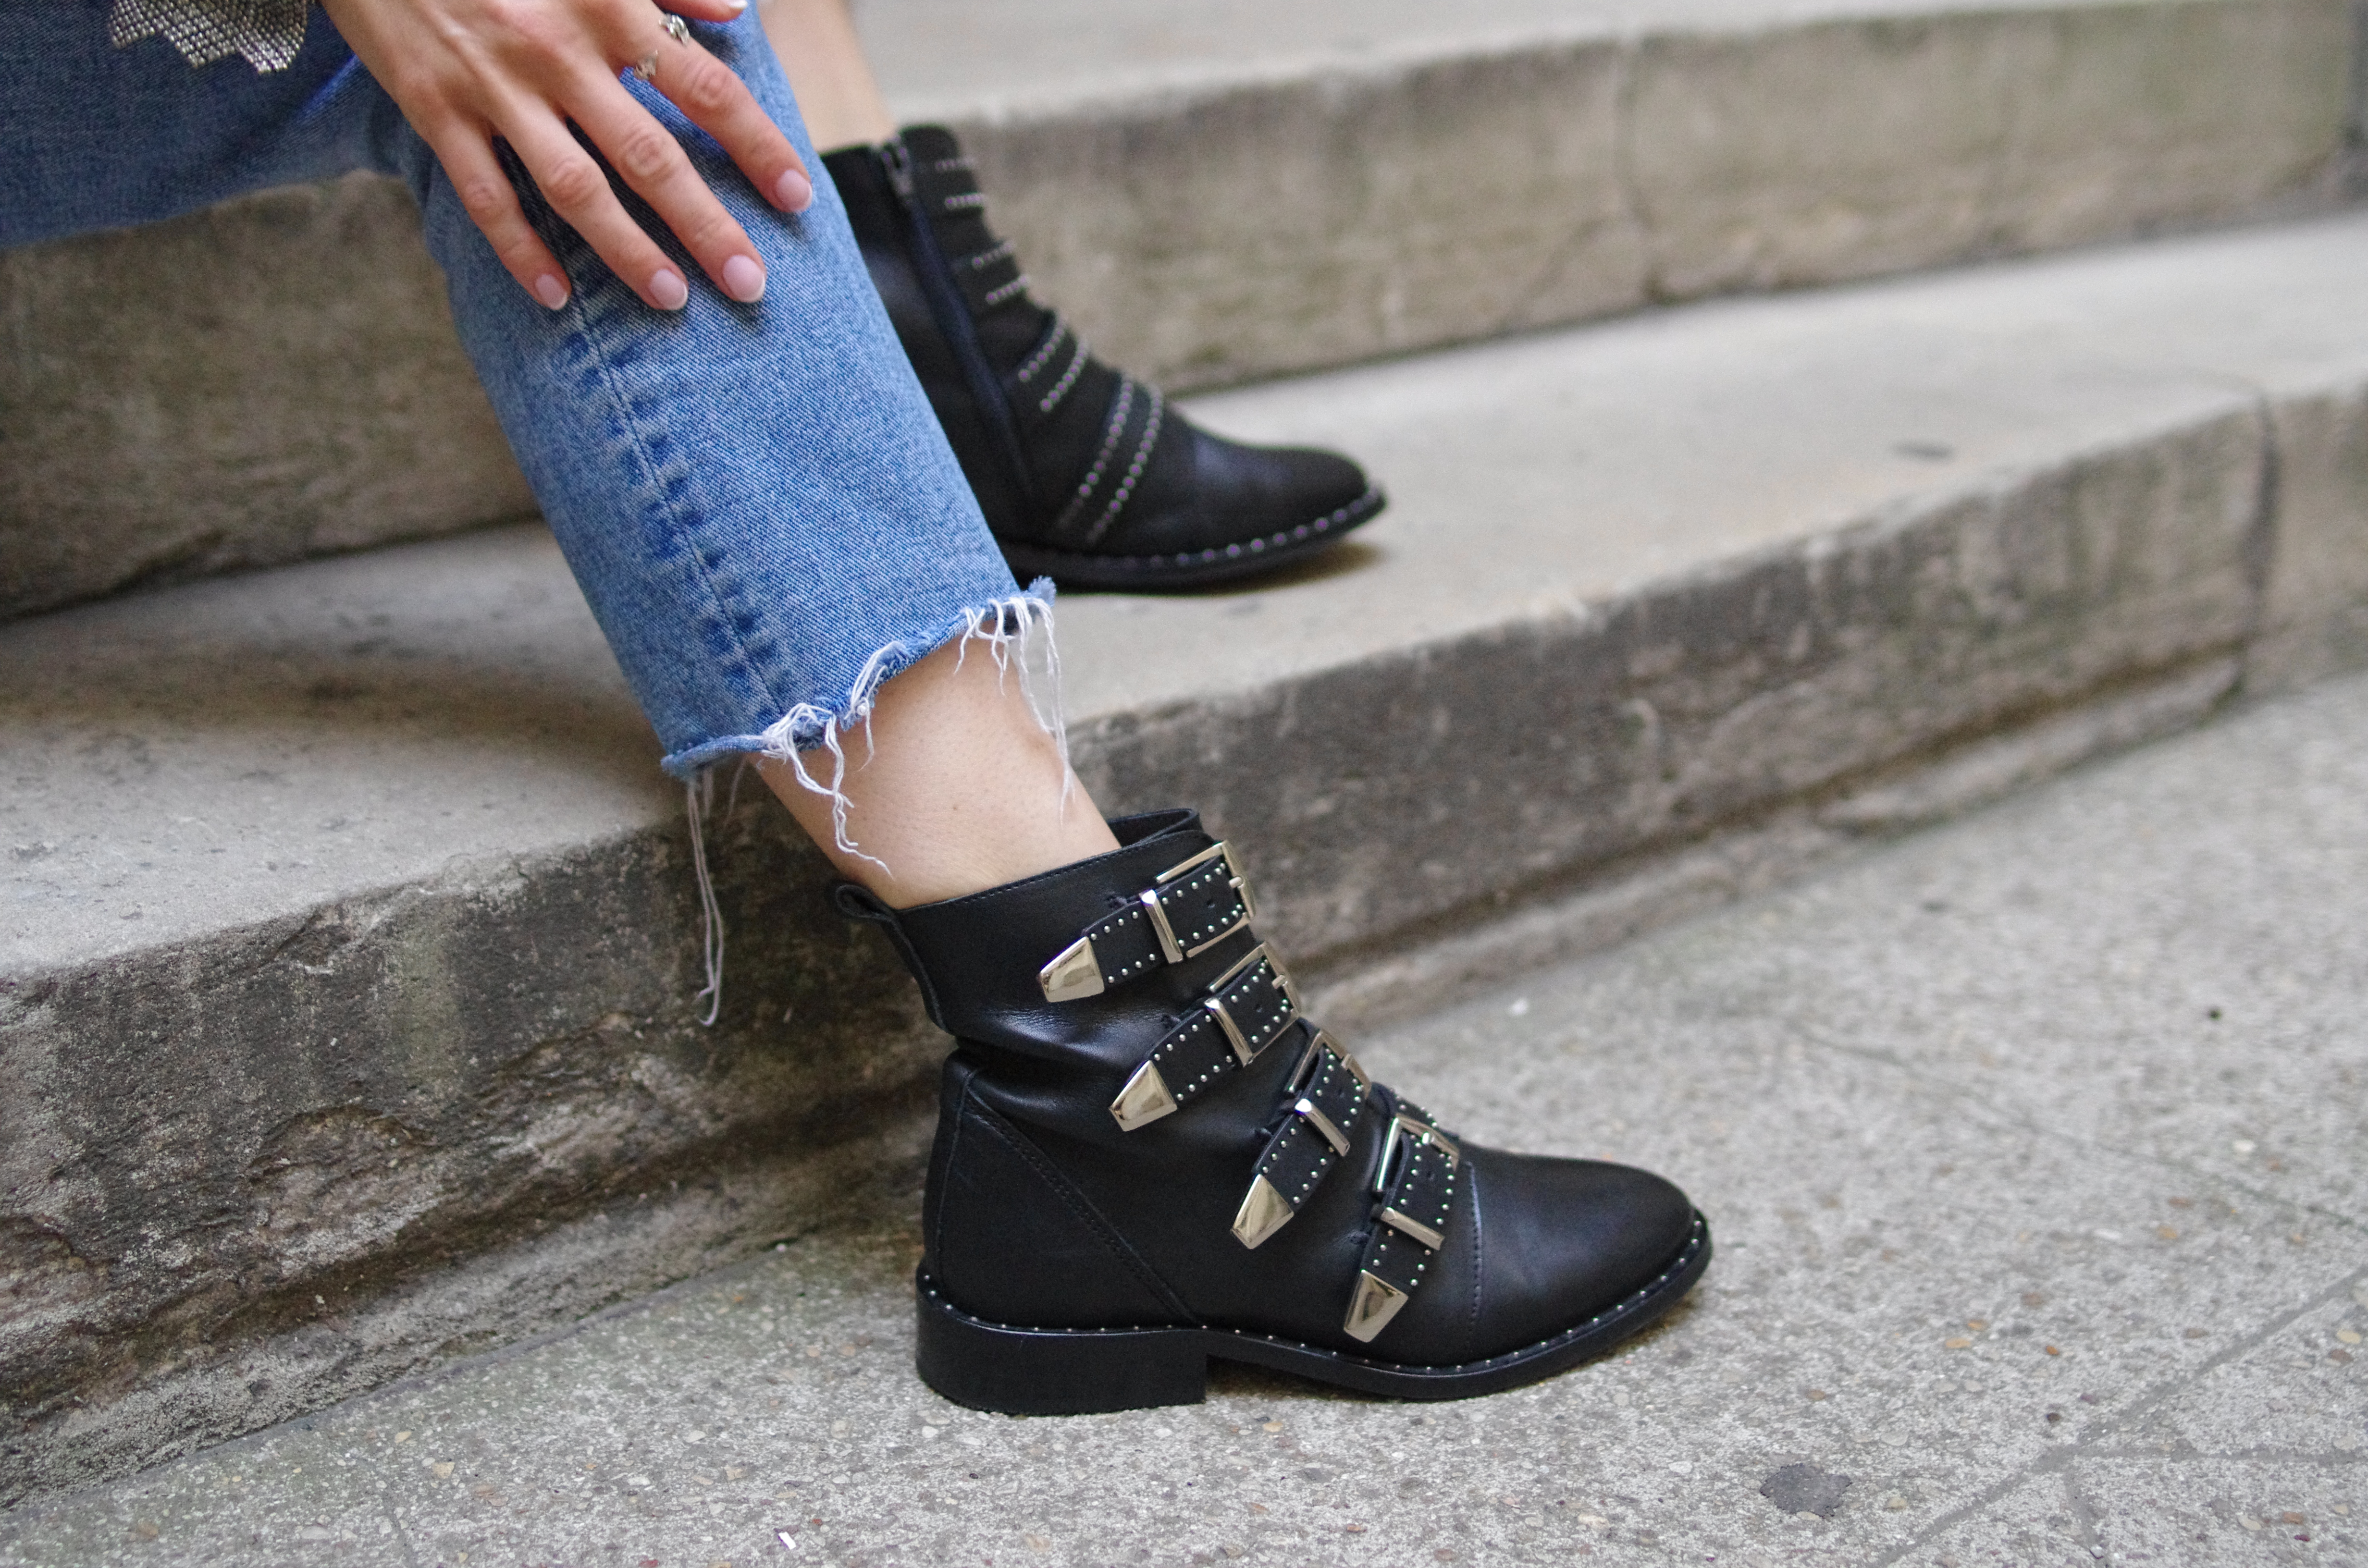 sacha shoes ; boots ; bottines ; chaussures ; winter boots ; boots militaire ; boots givenchy ;